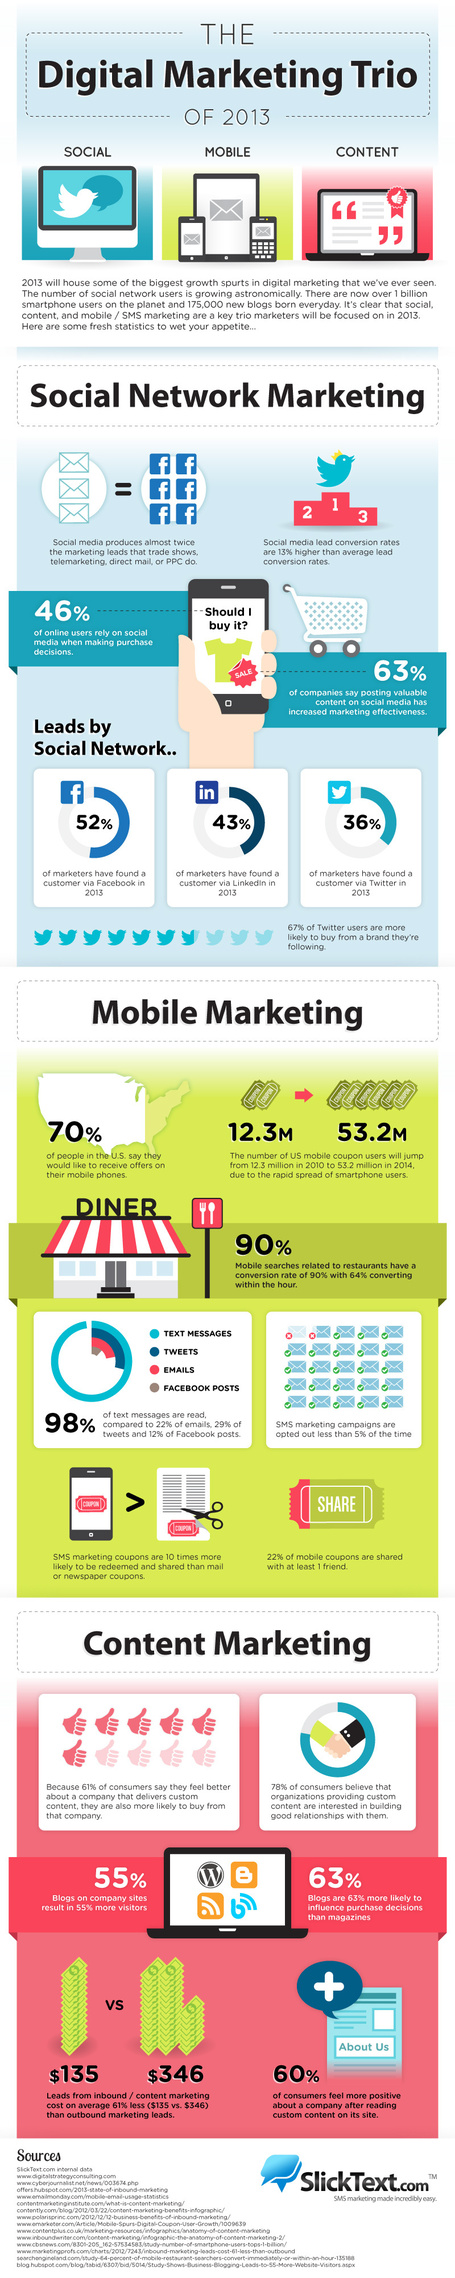 The Digital Marketing Trio Of 2013 [Infographic] | TICs para los de LETRAS | Scoop.it